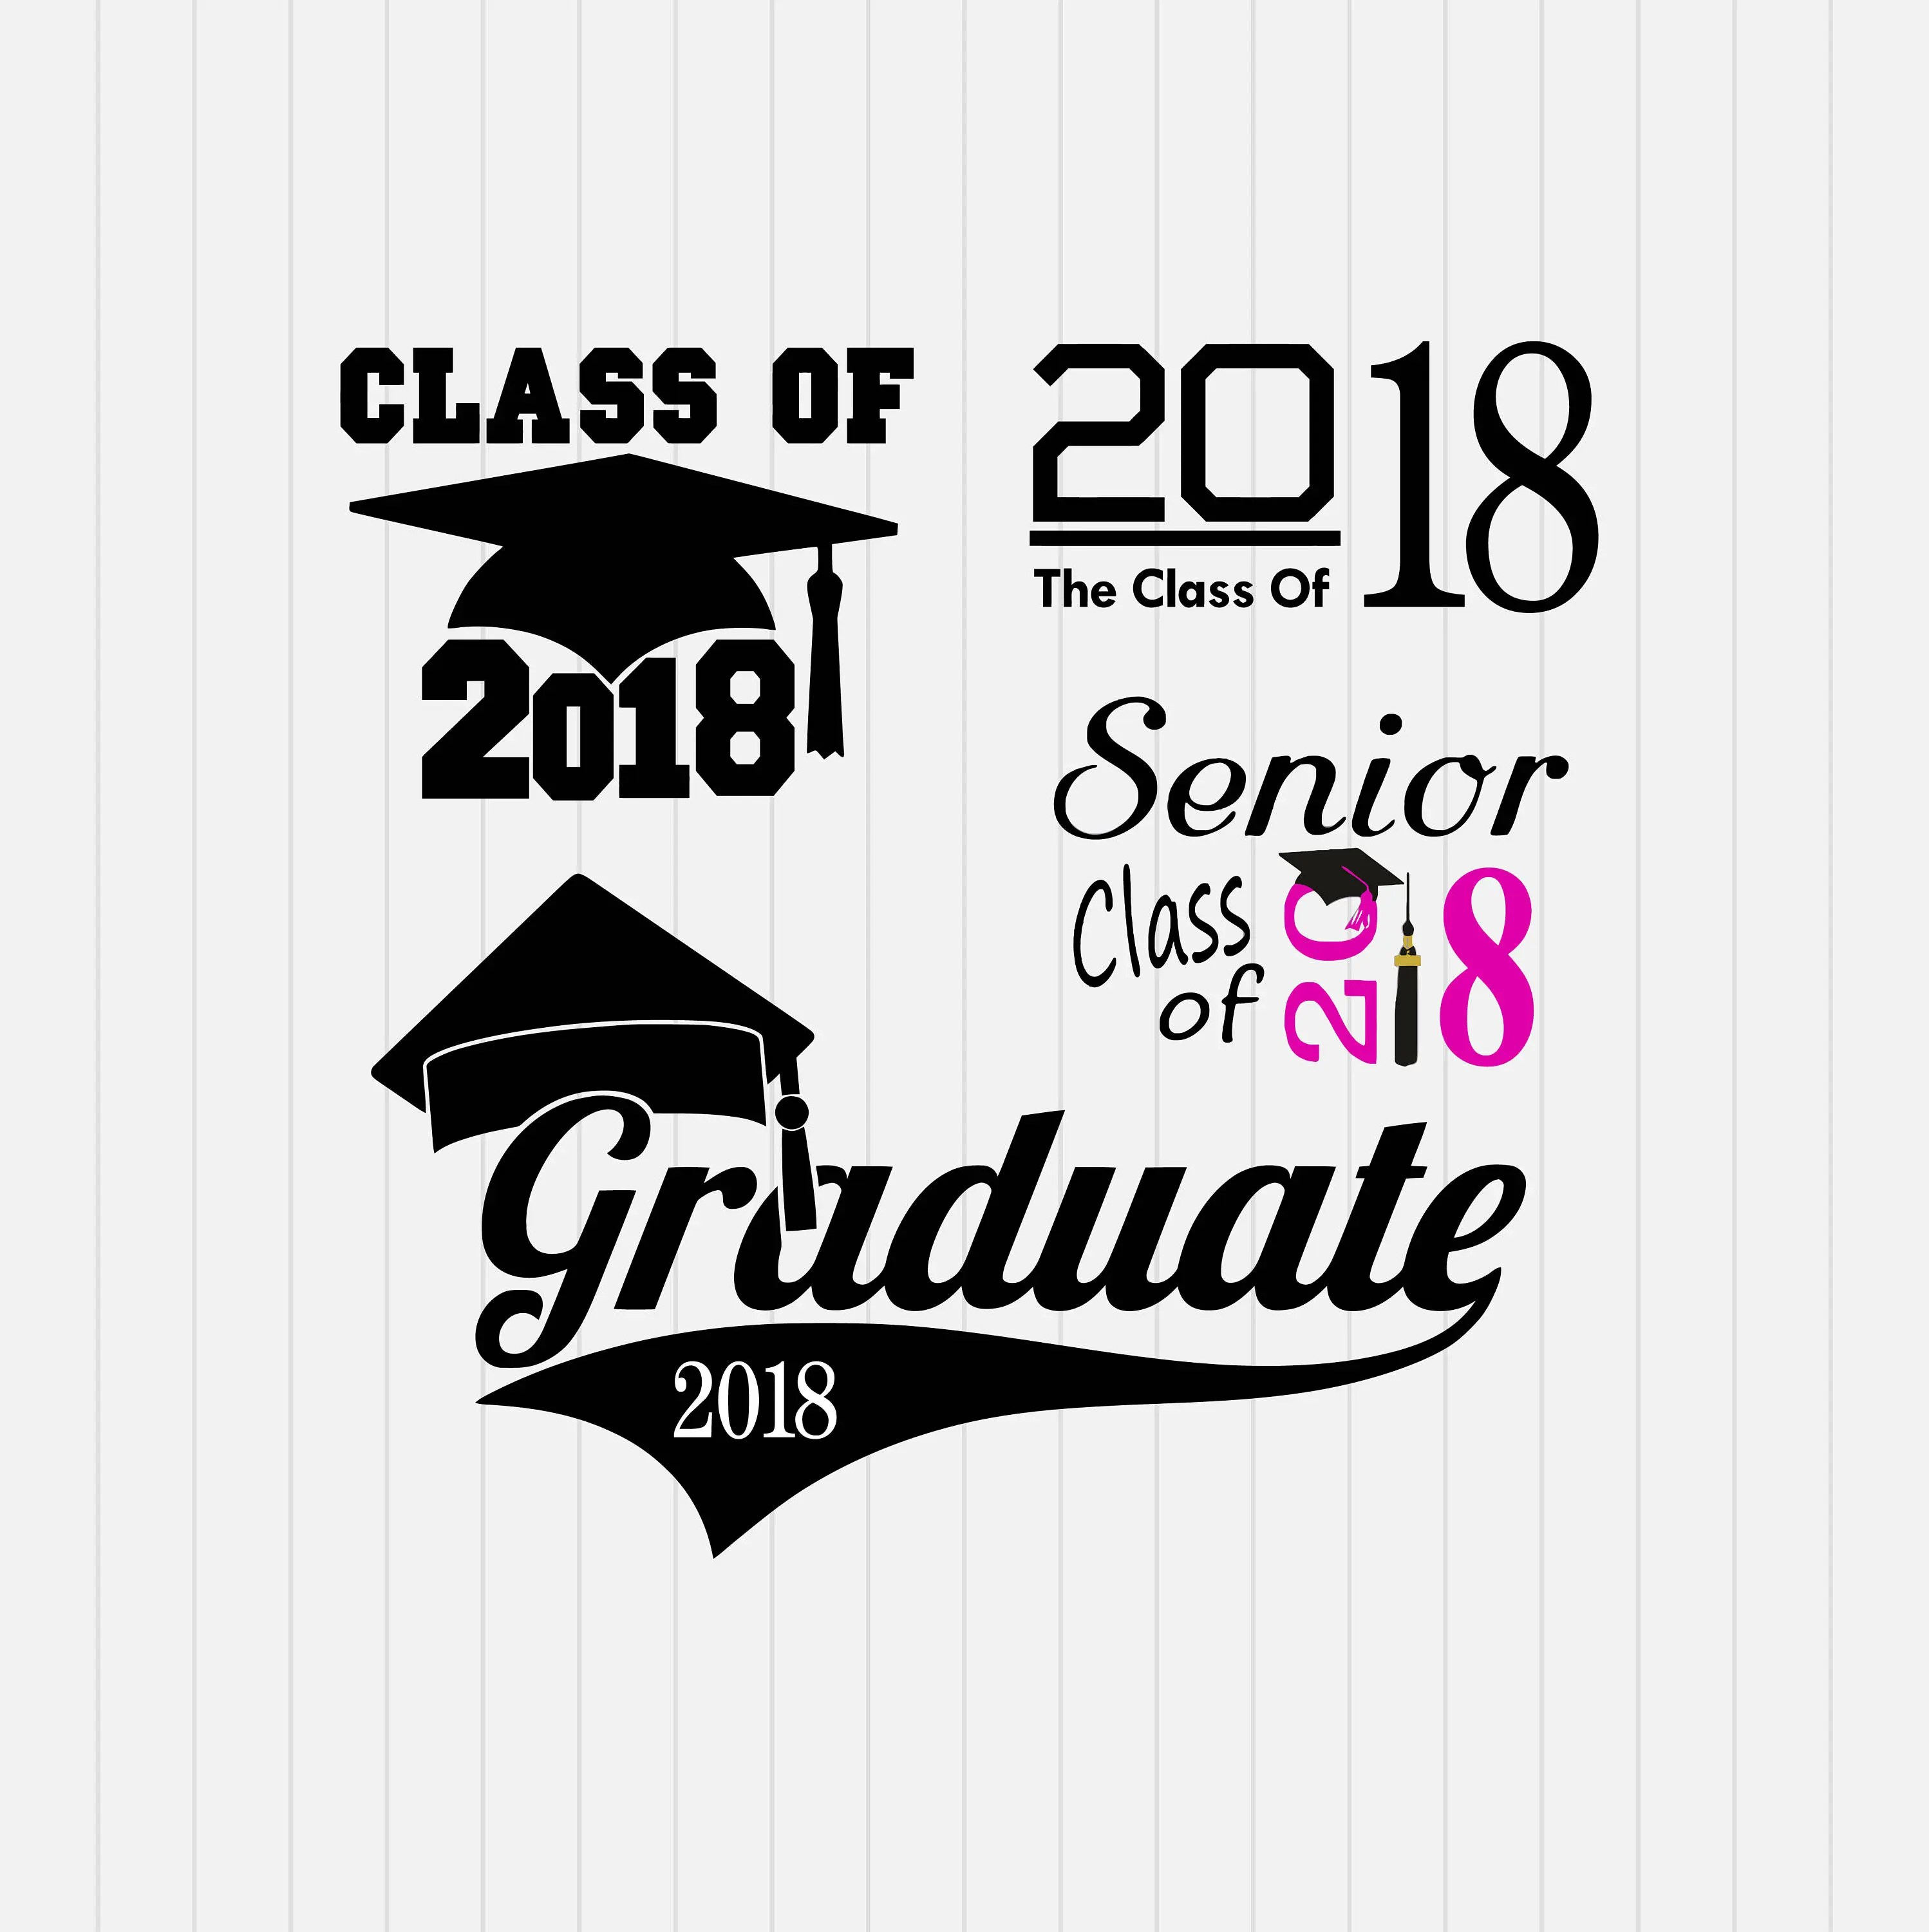 Graduation Day 2018 Class of 2018 svg dxf eps png Pdf